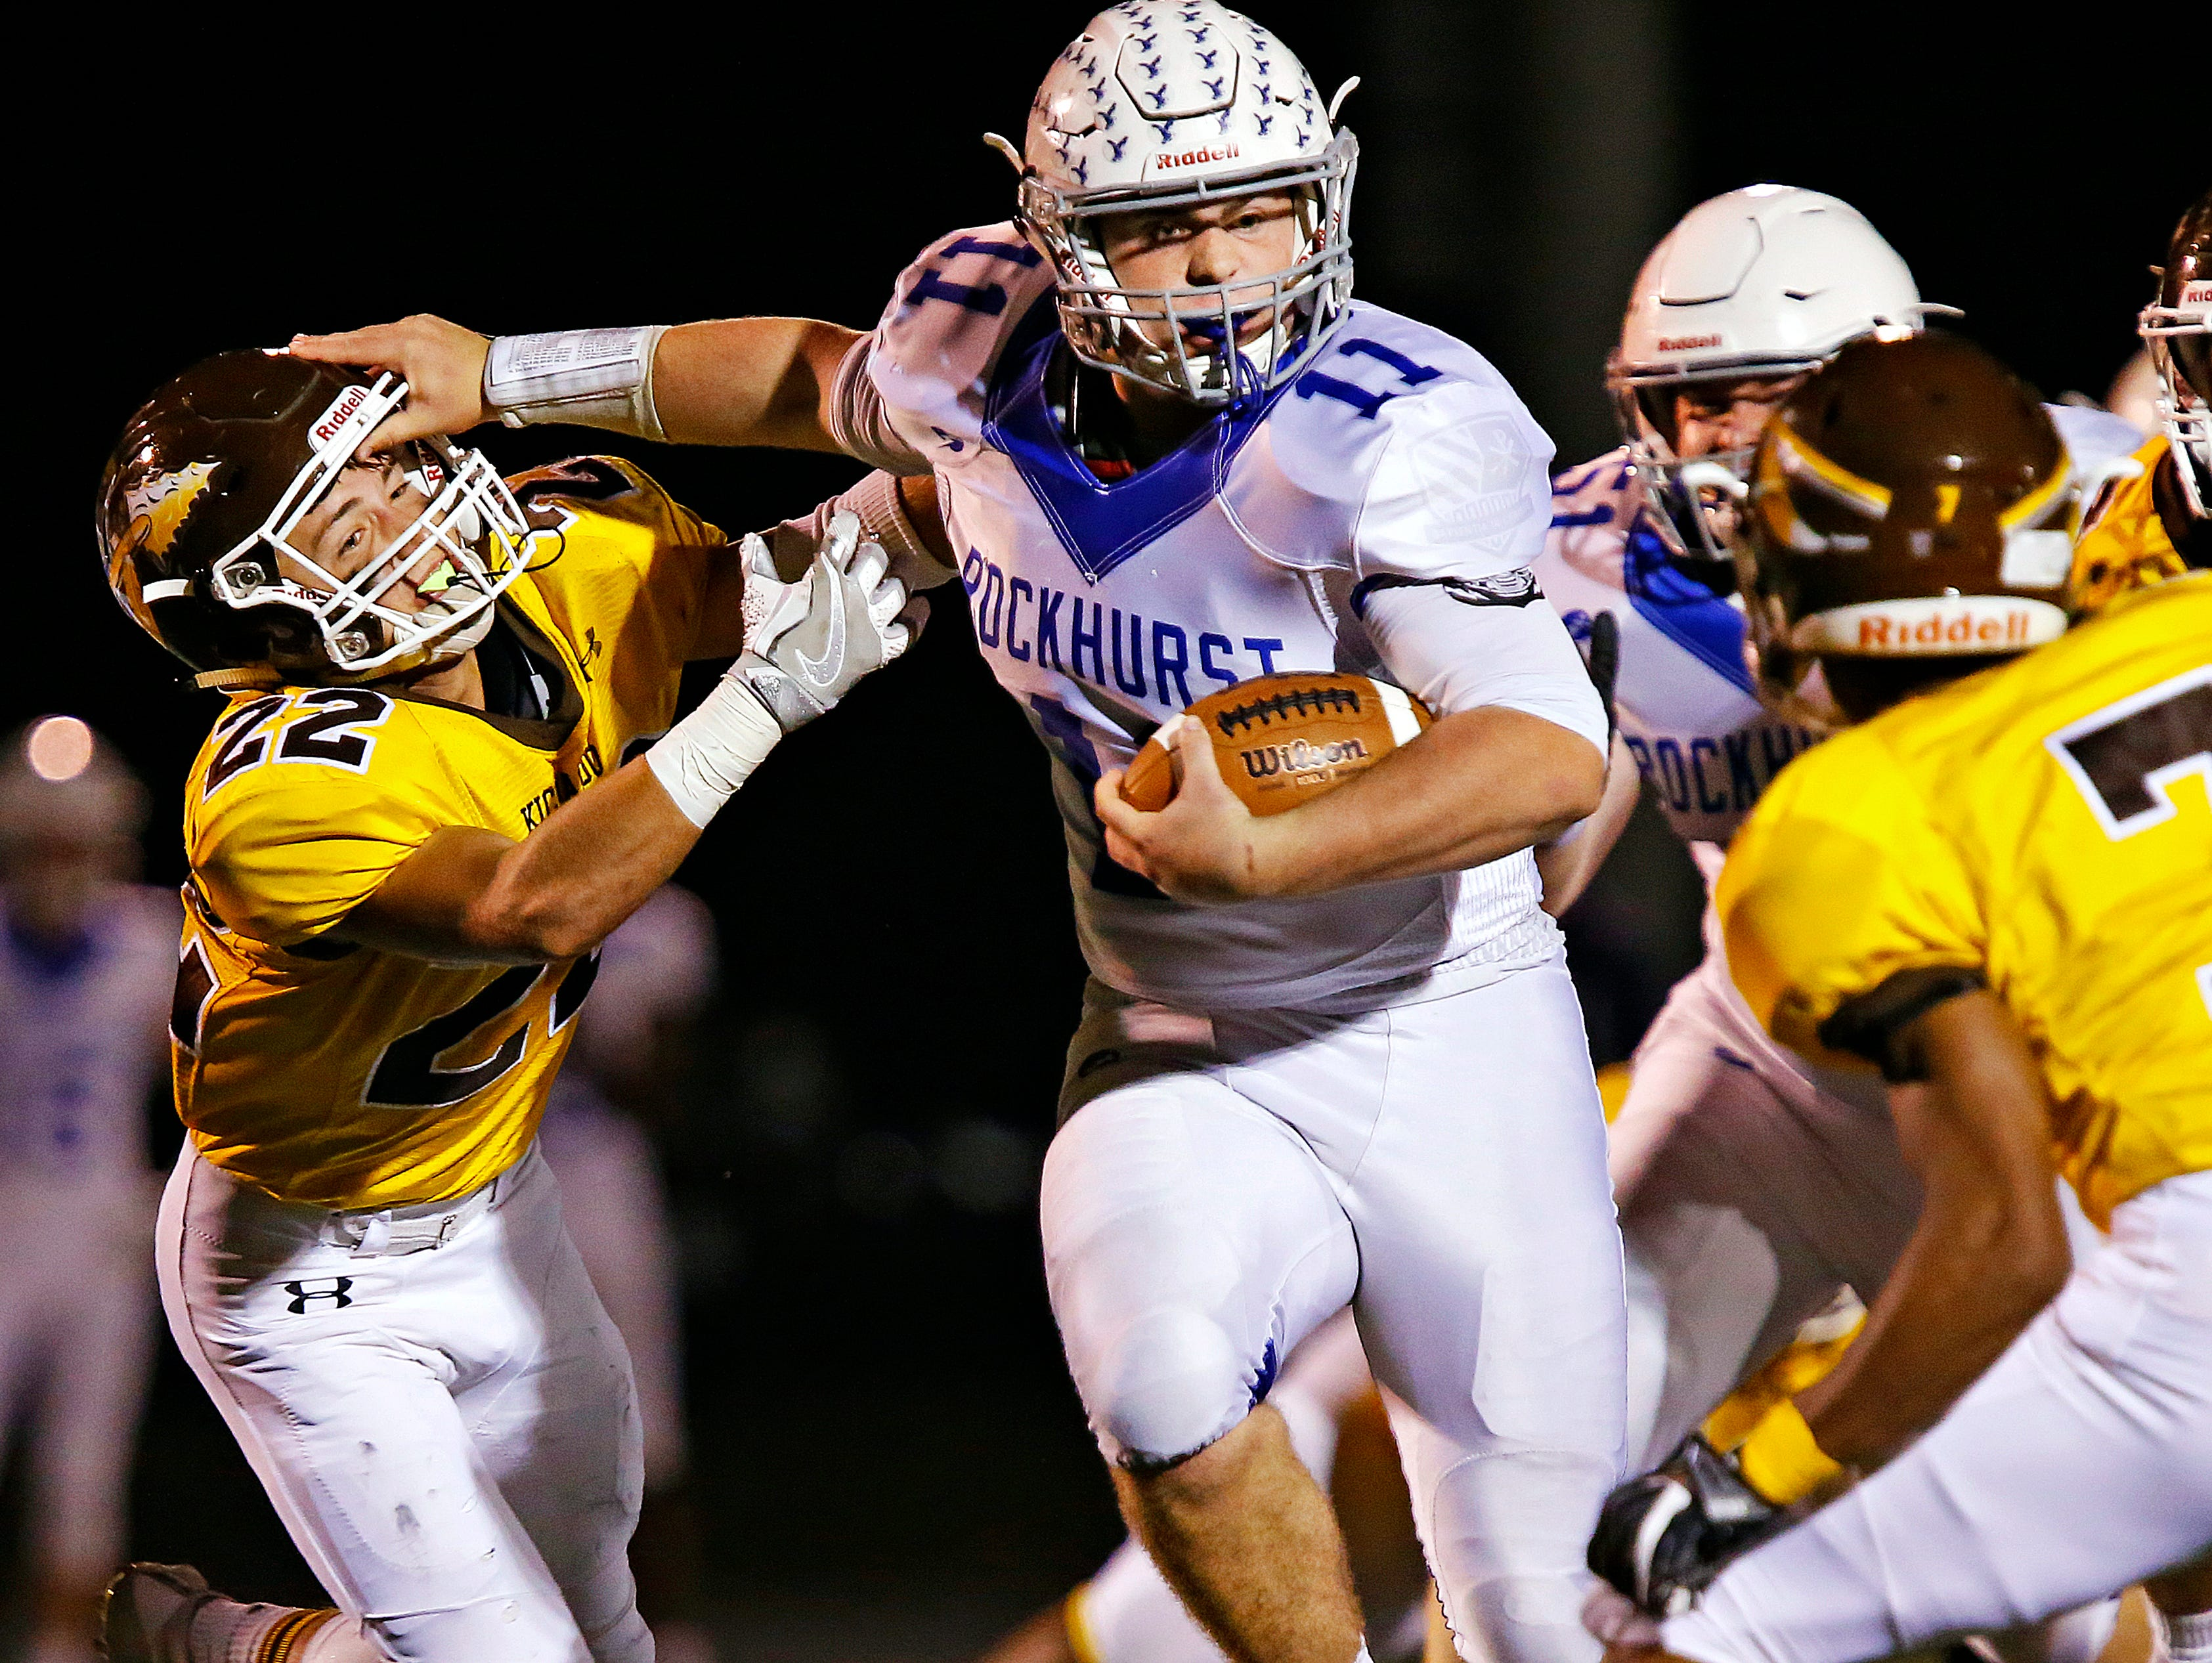 Rockhurst High School quarterback Chance May (11) stiff arms Chiefs wide receiver Cole McCarville (22) during first quarter action of the Class 6 playoff game between Rockhurst High School and Kickapoo High School played at Pottenger Stadium in Springfield, Mo. on Oct. 28, 2016.